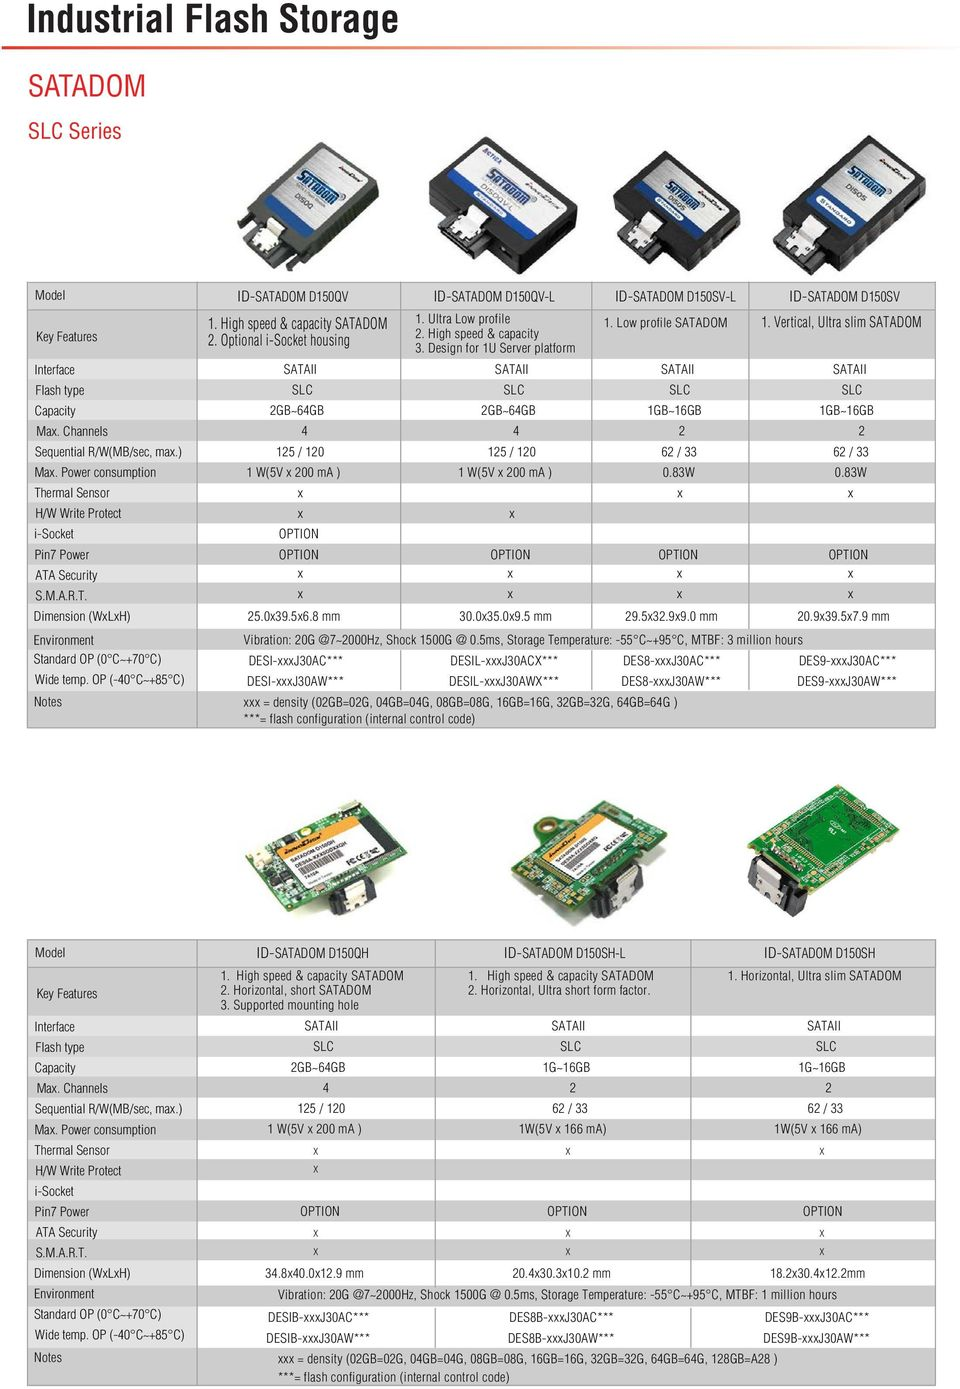 Design for 1U Server platform GB~6GB 1GB~16GB 15 / 10 6 / 33 1 W(5V x 00 ma ) 0.3W 1. Vertical, Ultra slim SATADOM 1GB~16GB 6 / 33 0.3W 5.0x39.5x6. mm 30.0x35.0x9.5 mm 9.5x3.9x9.0 mm 0.9x39.5x7.